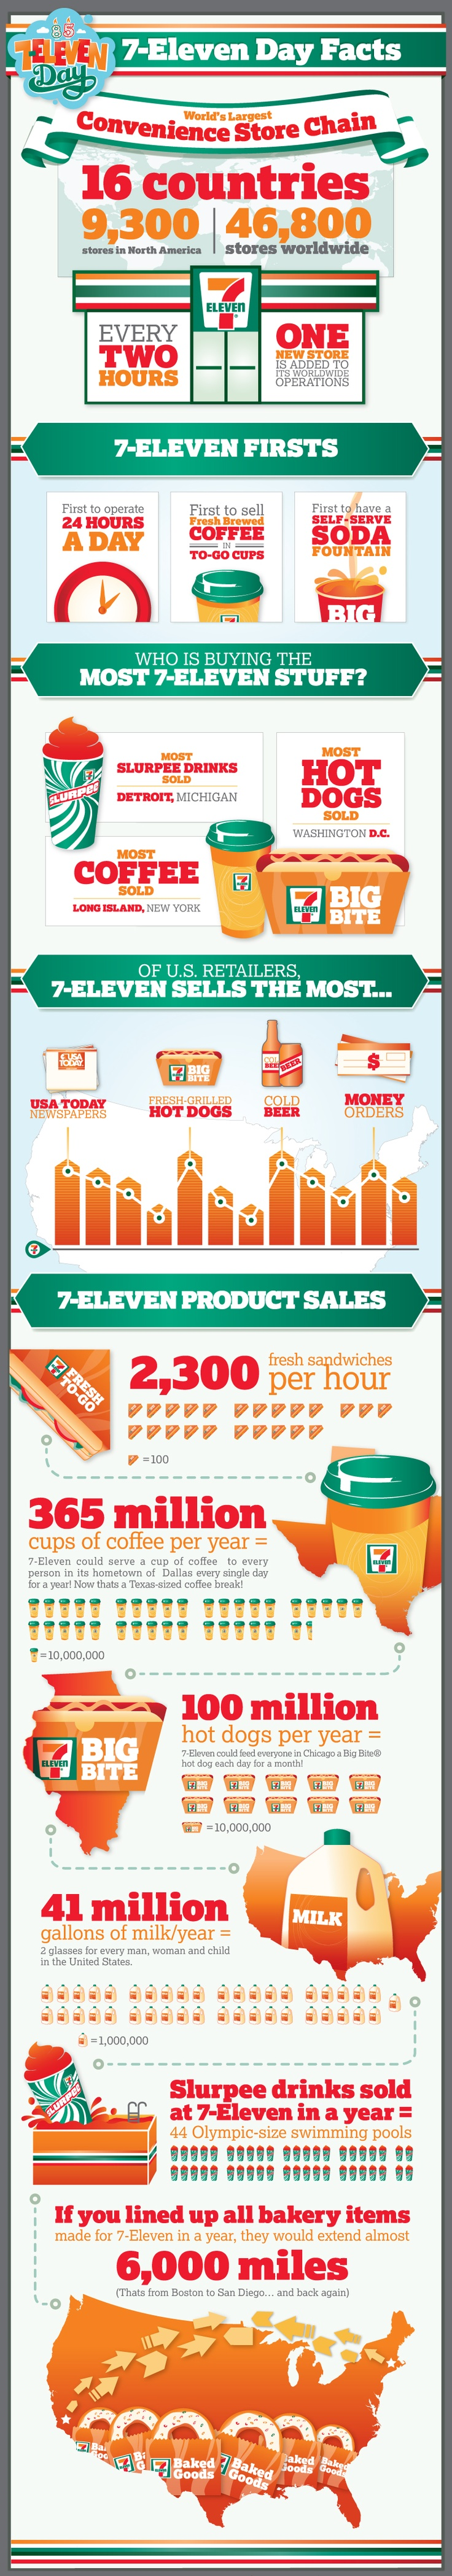 140 best 7 11 STORE images on Pinterest | 7 eleven, Convenience ...